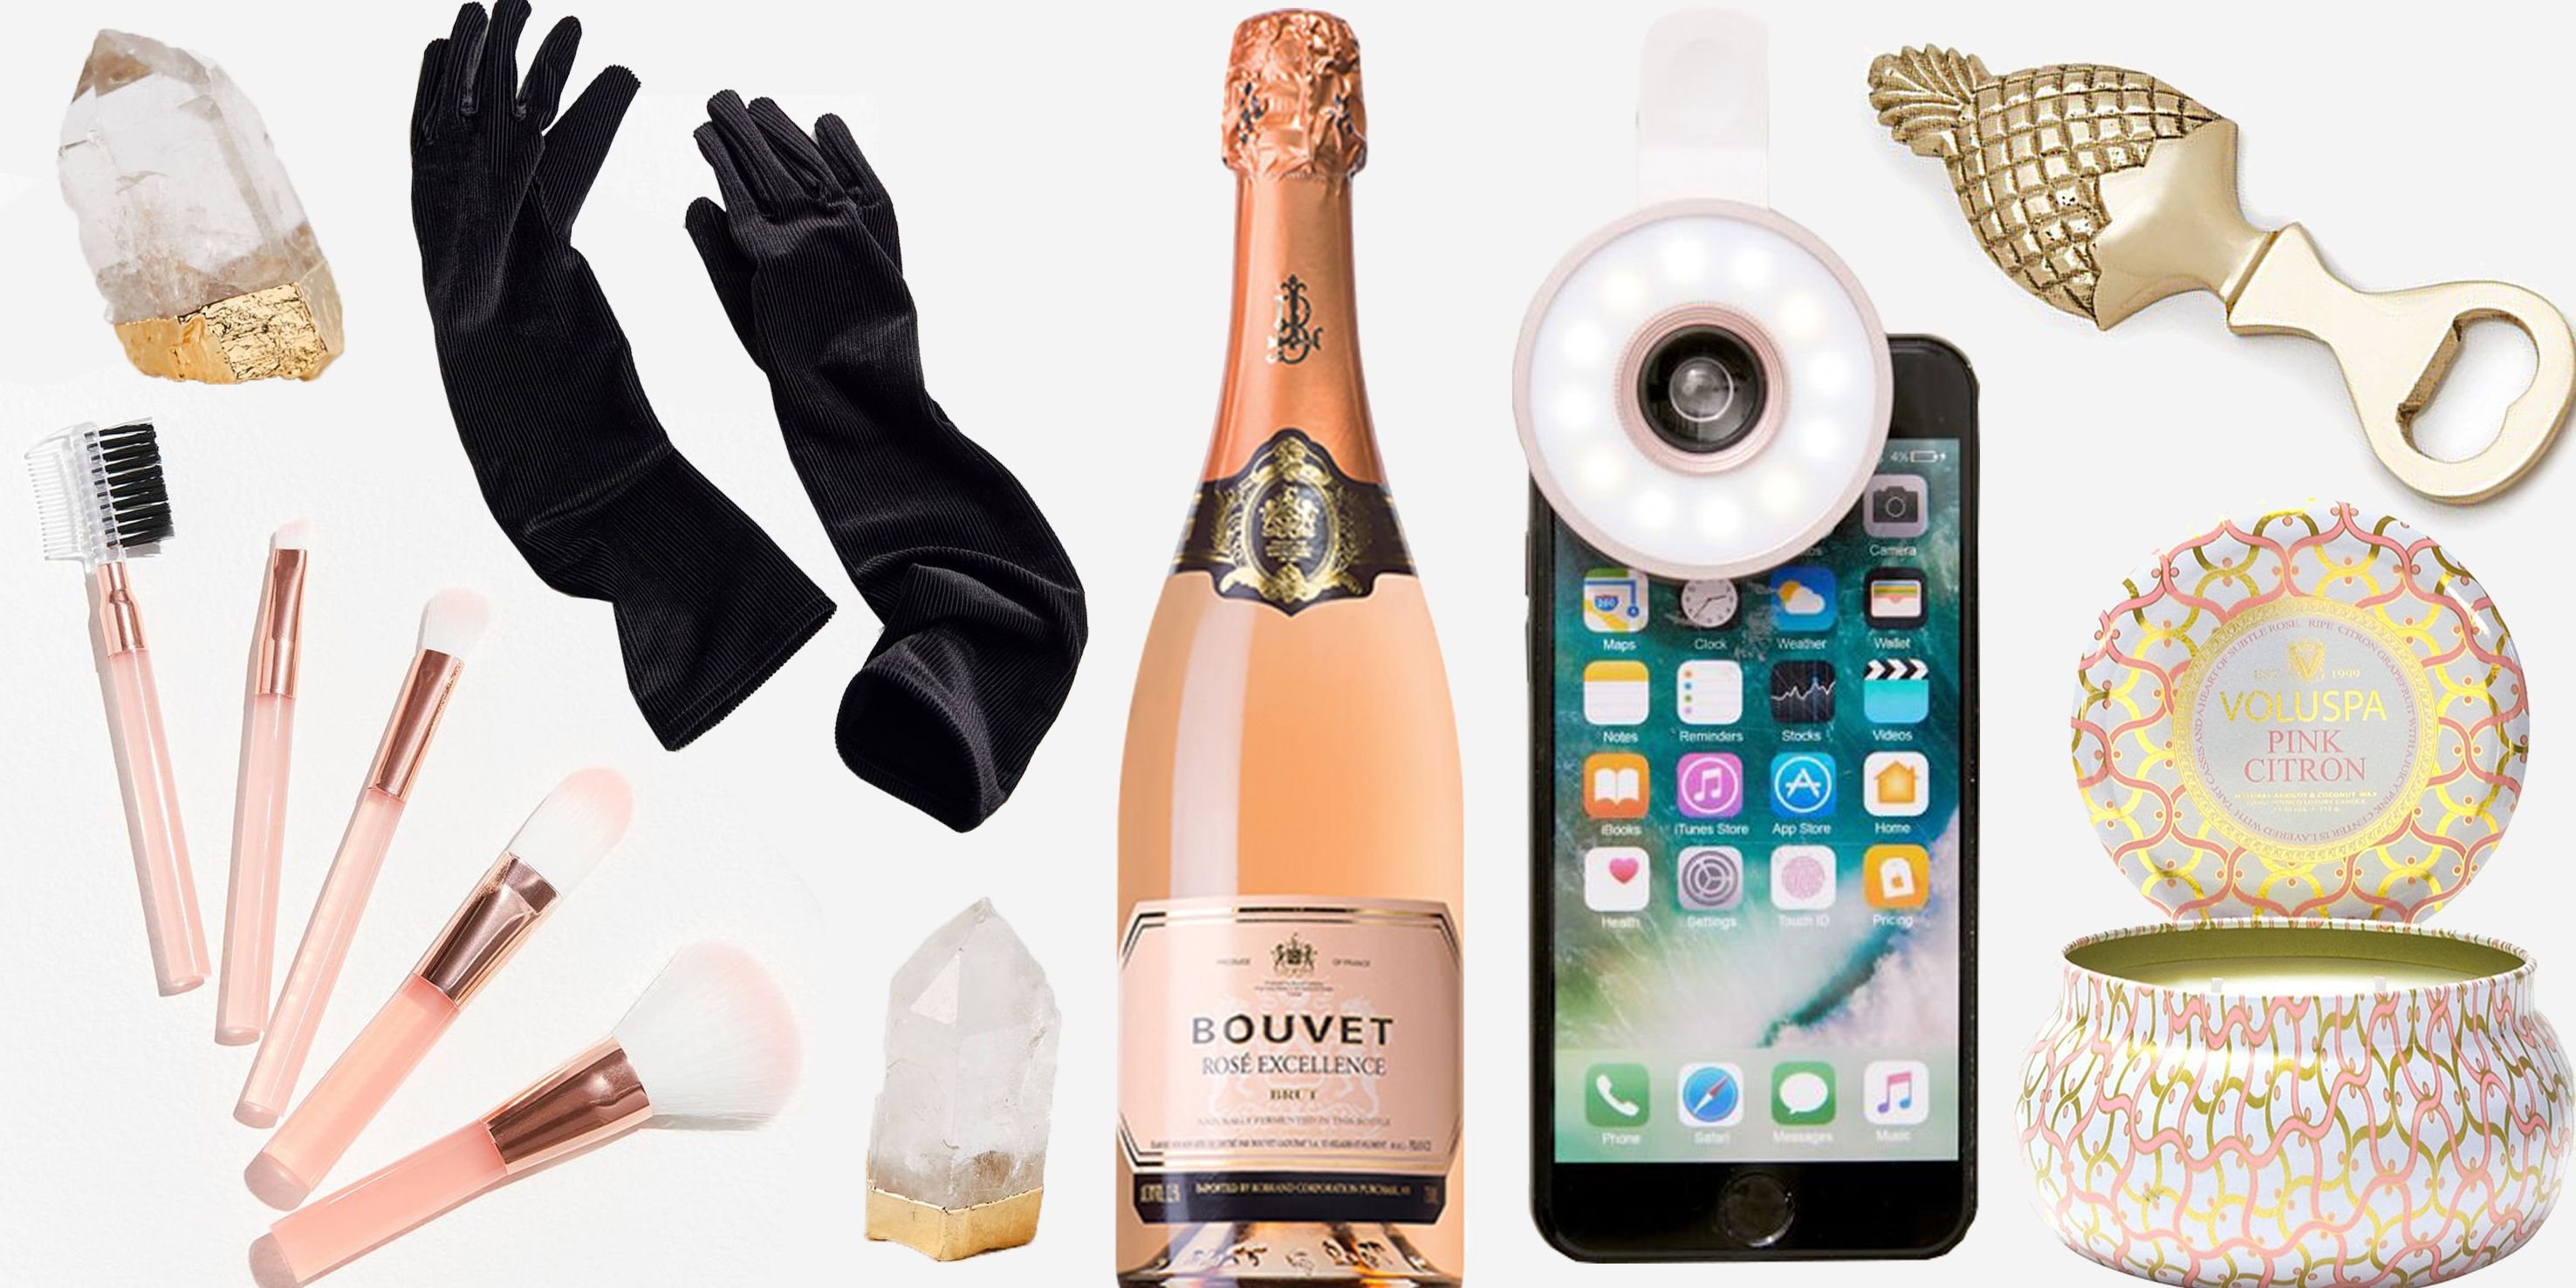 Stylish Gifts Under $20, for Stocking Stuffers and More